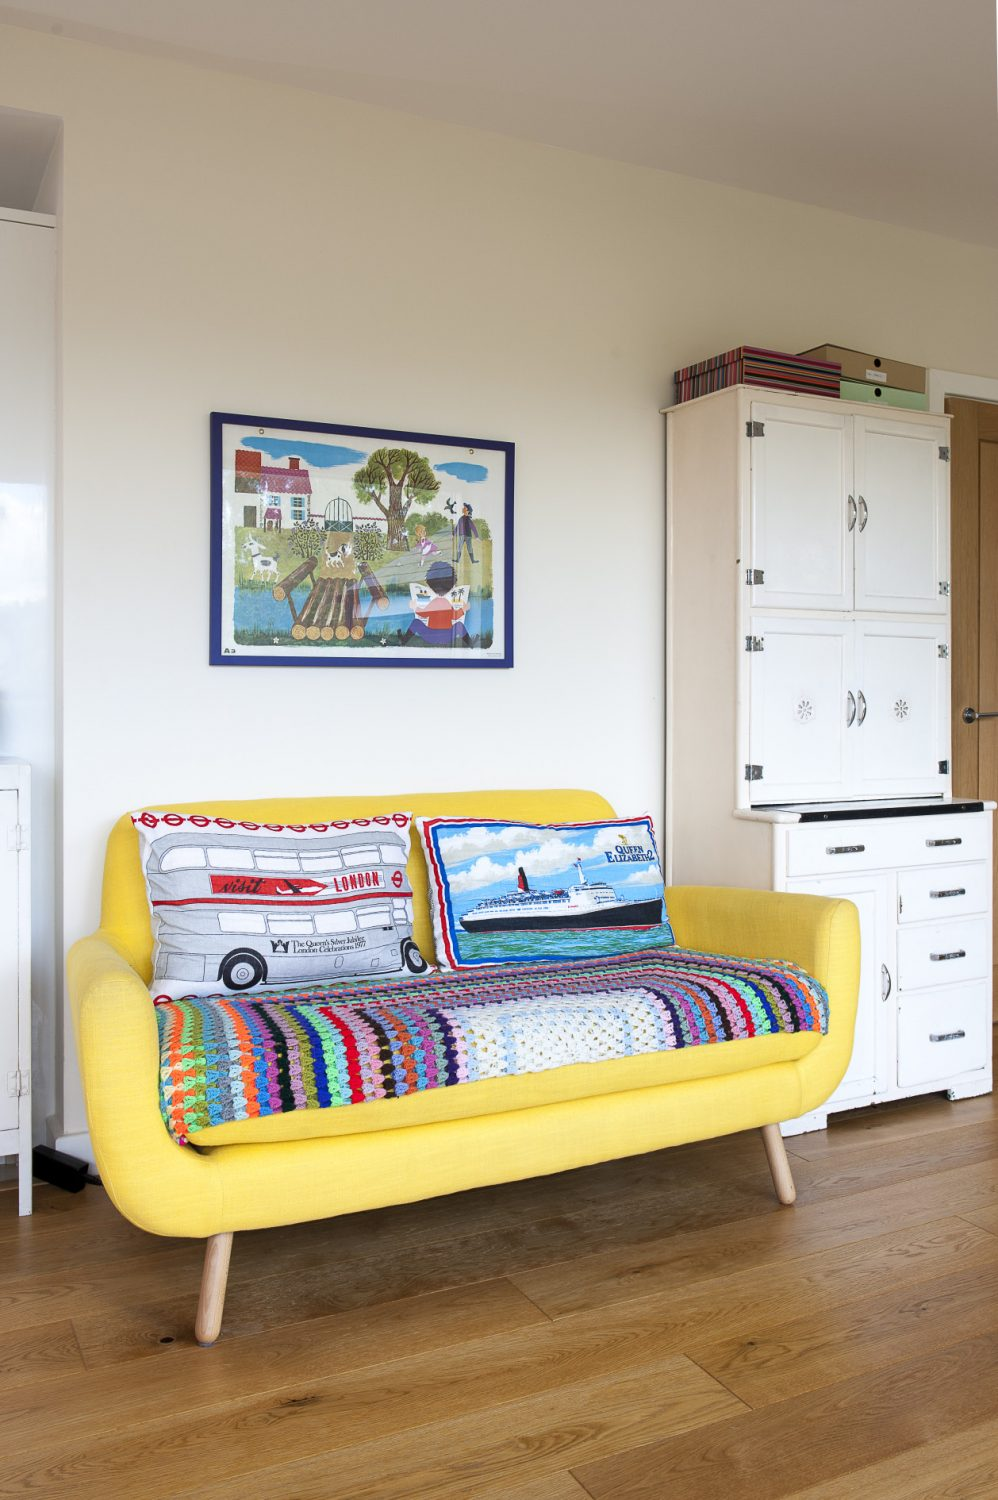 The pretty 60s-style sofa is from Made.com and above it hangs a 1960s French schoolroom poster